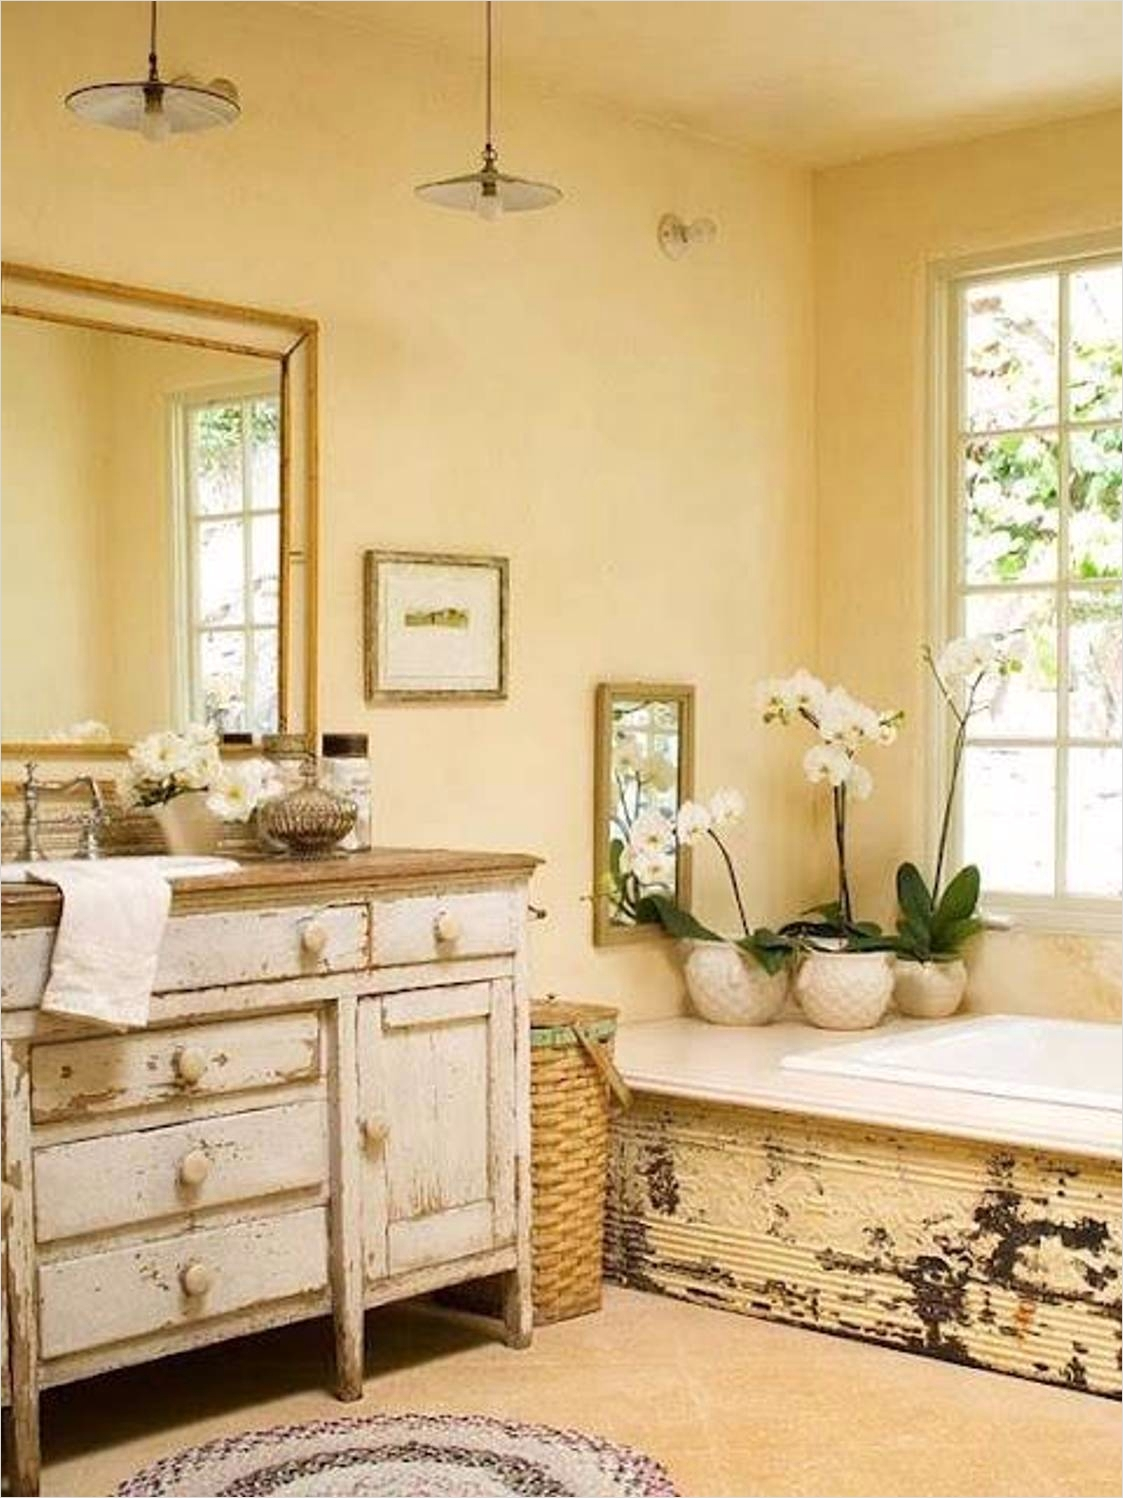 40 Stunning French Country Small Bathroom 18 French Country Bath Inspiration New Contemporary Bathrooms Ideas Bathroom Design and Shower 2